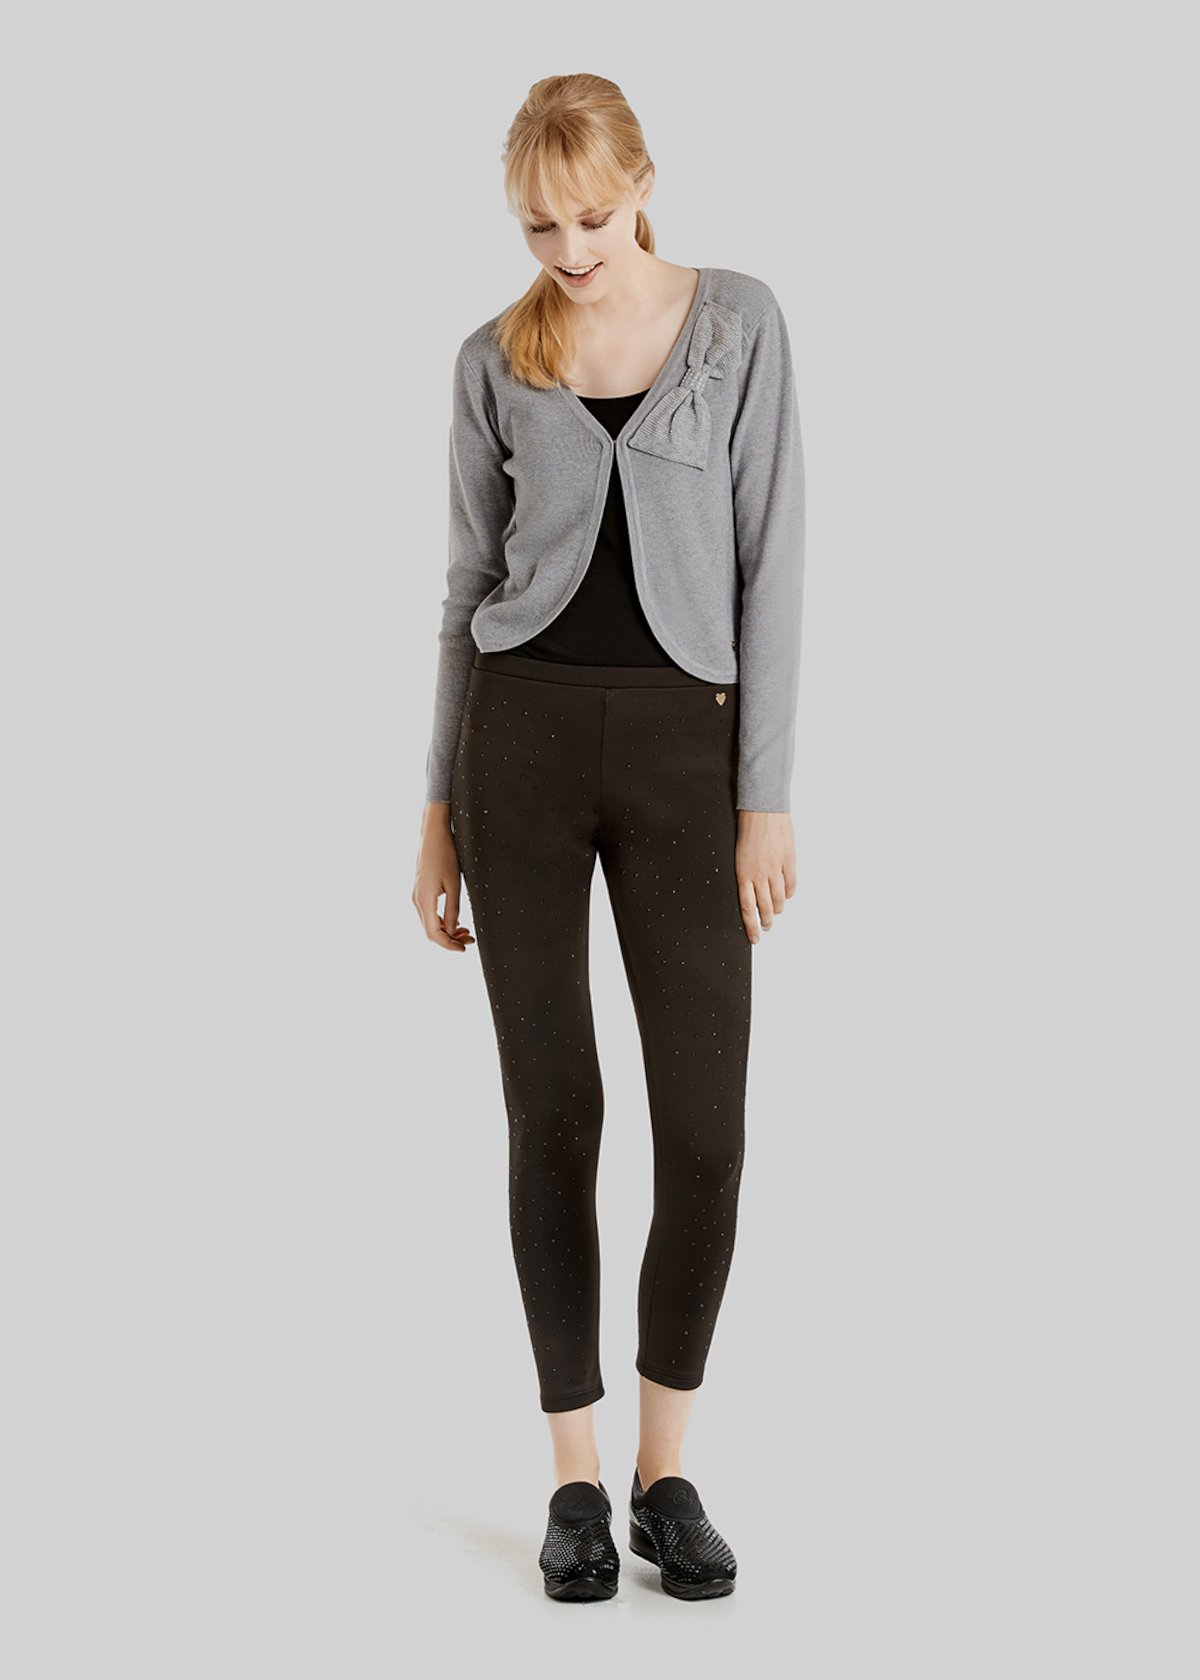 Cesar shrug with bow detail - Grey Melange - Woman - Category image